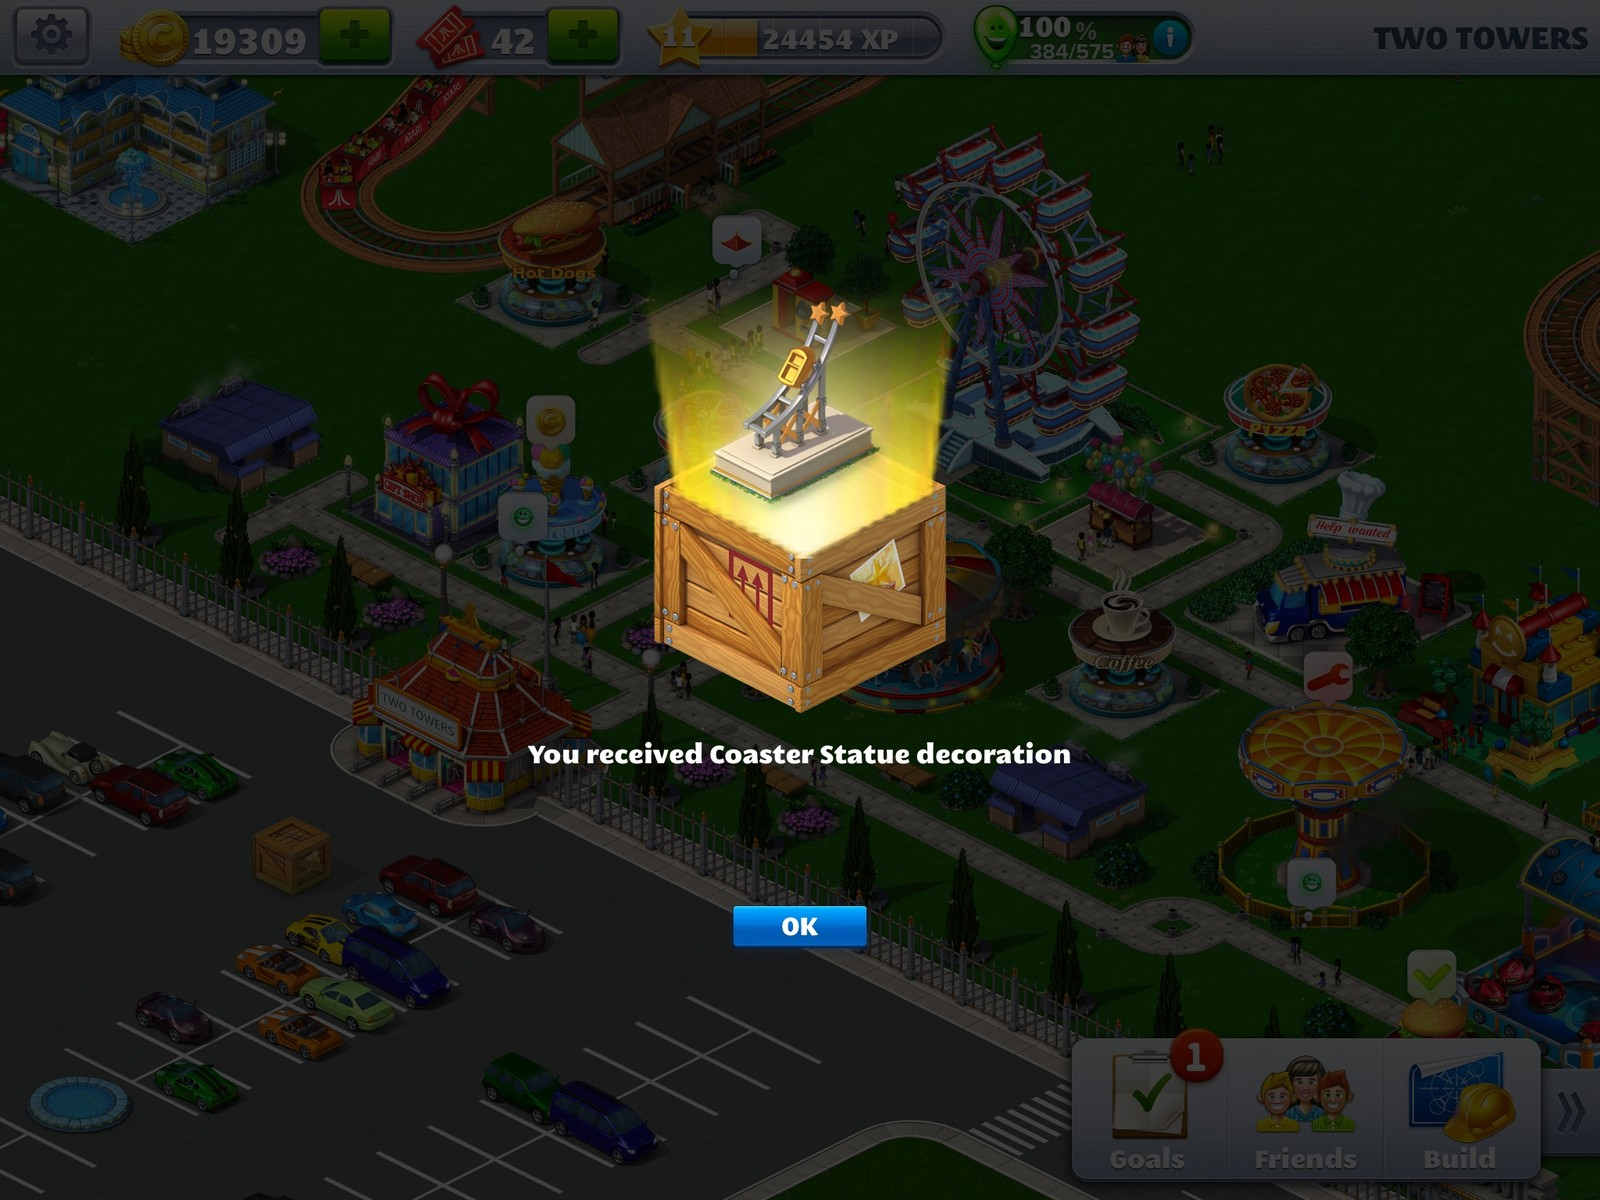 Casino cheat tycoon absoulutely casino i just like online say site that web